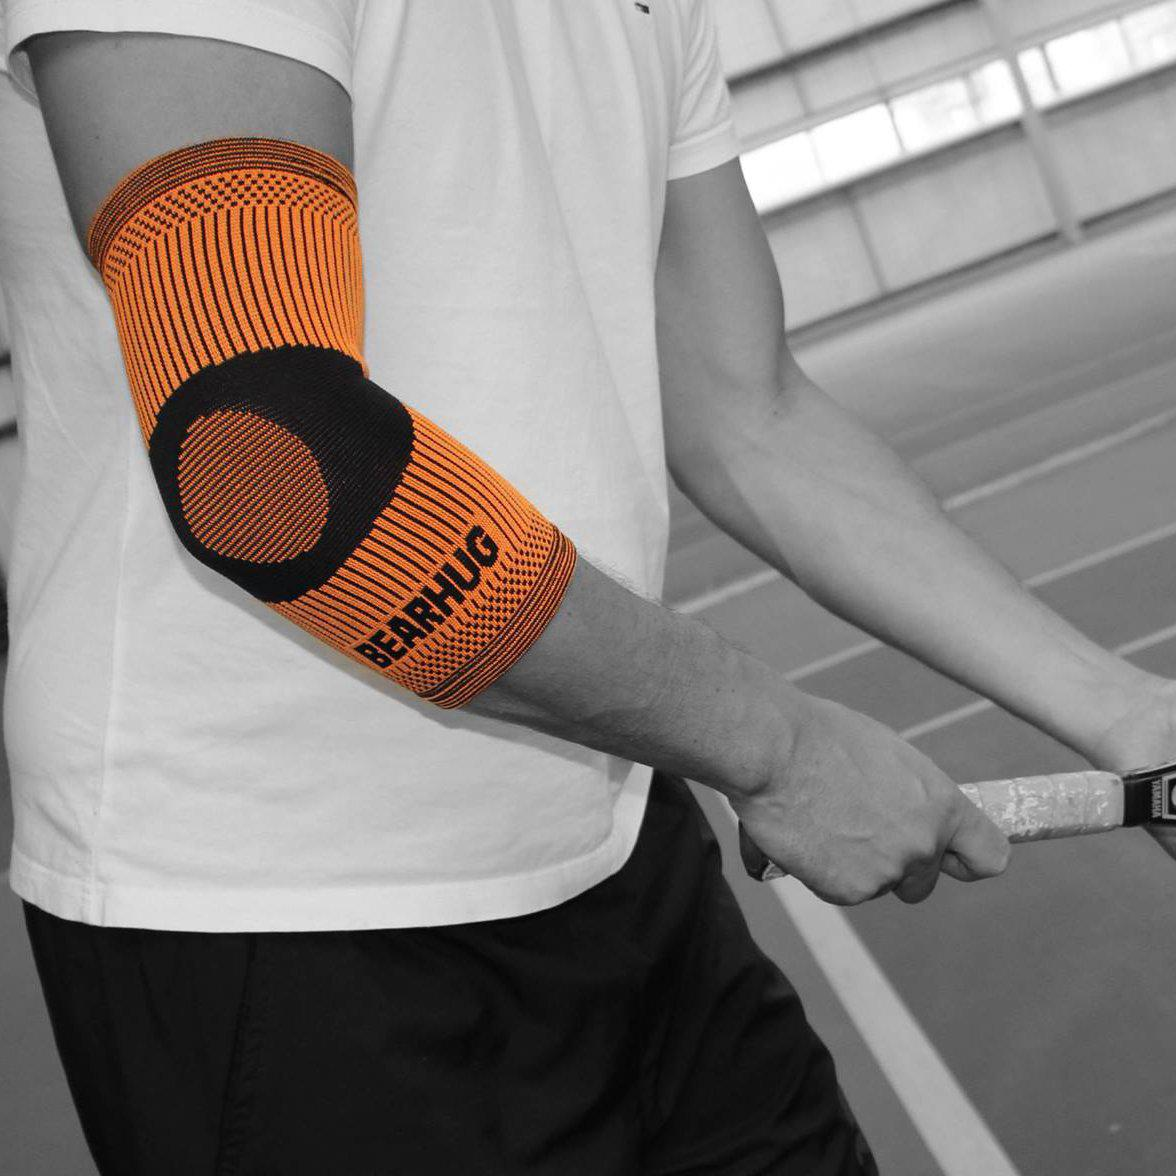 Elbow Compression Support Sleeve For Tennis Elbow Recovery-Support-Bearhug